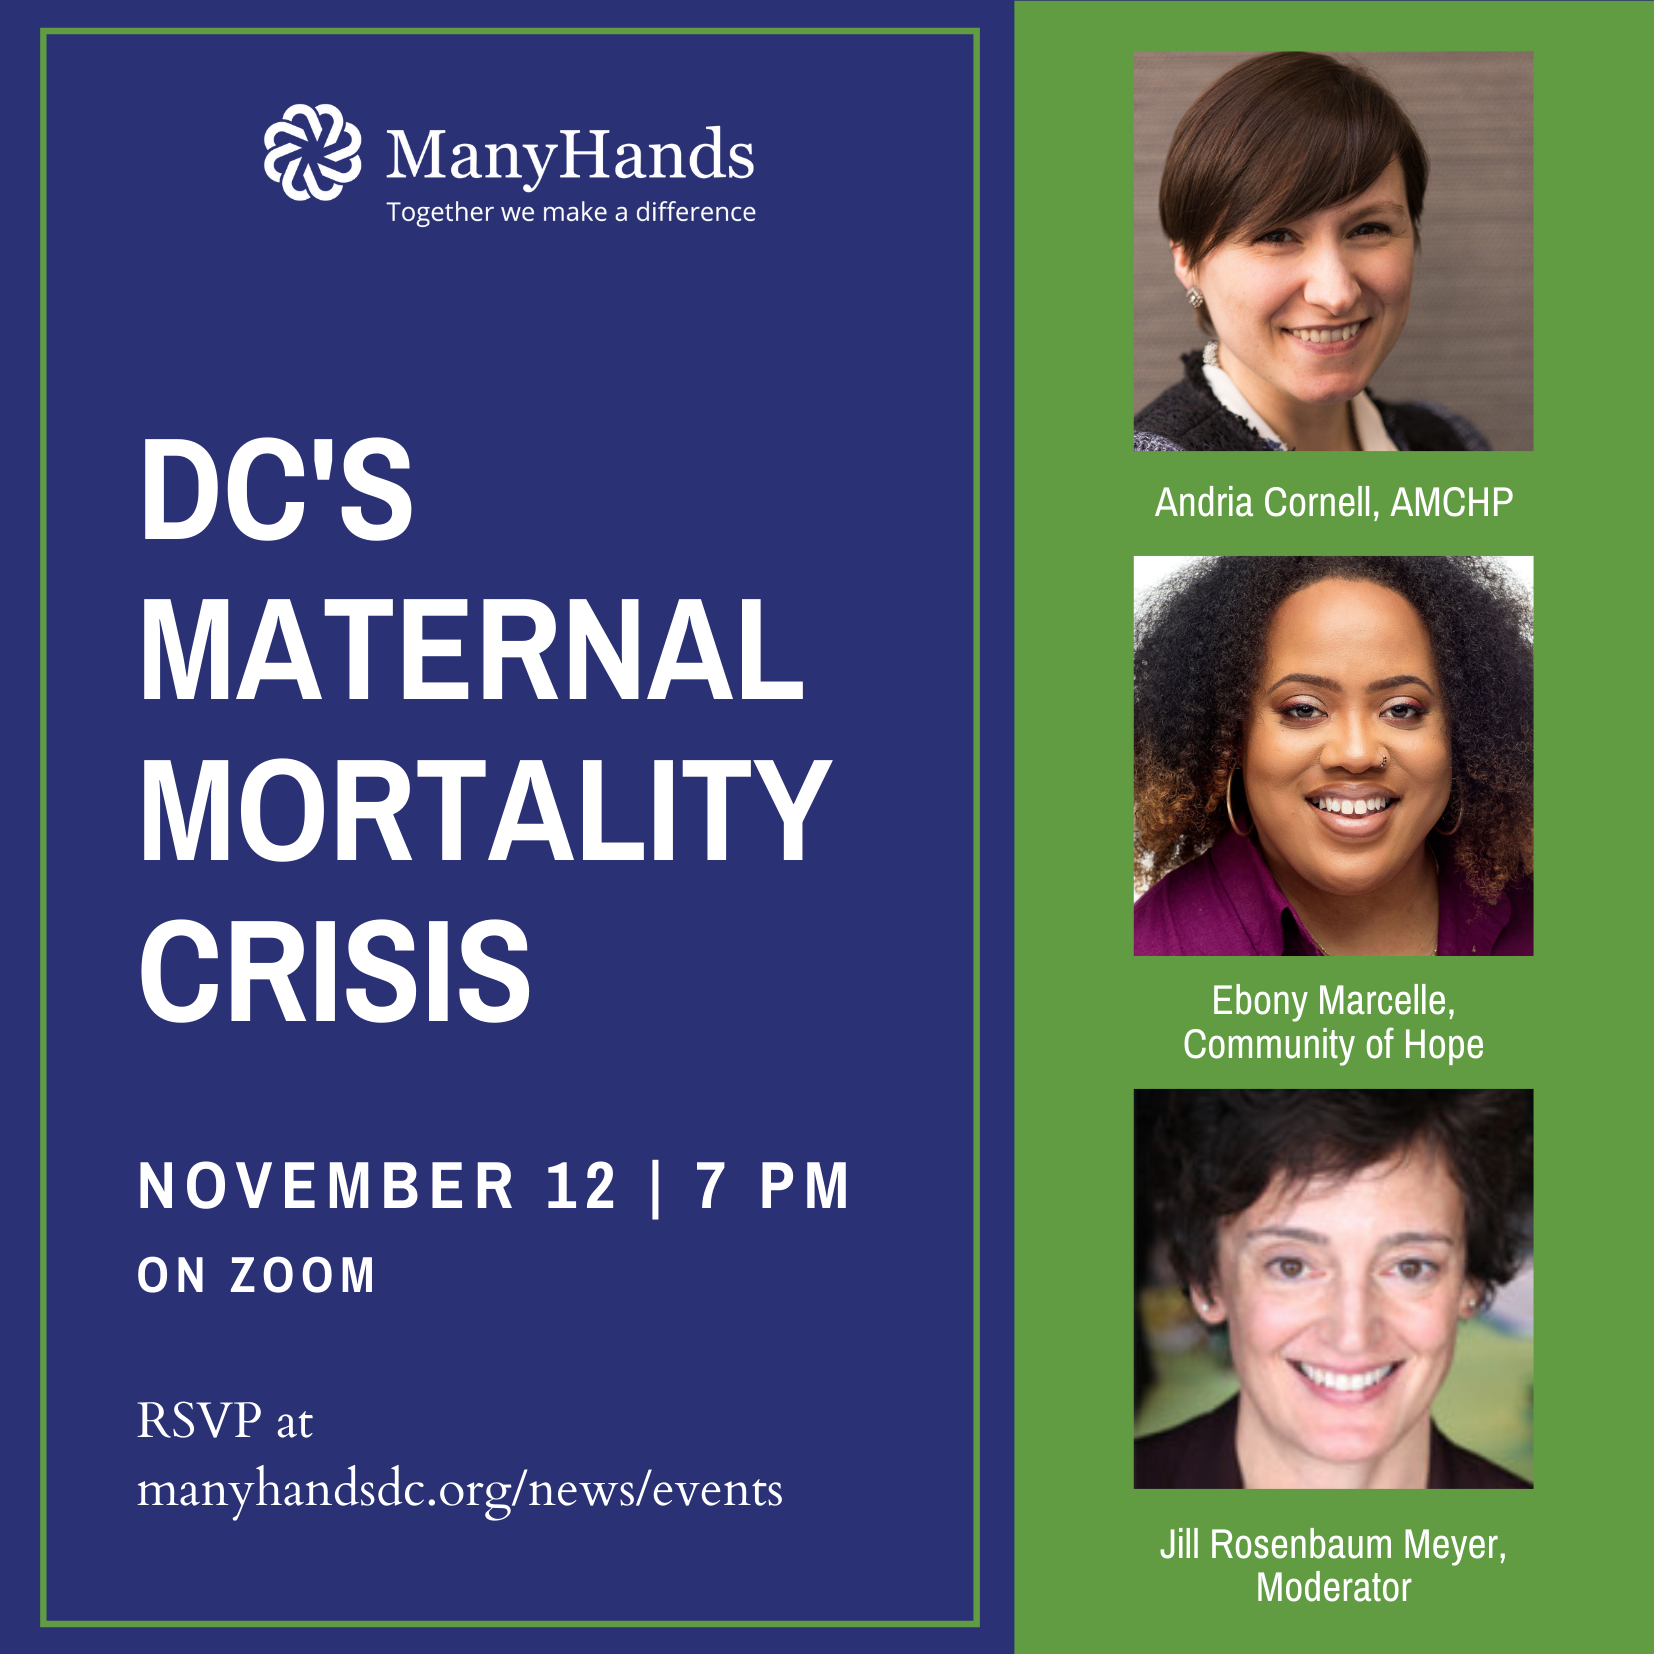 Invitation to Nov 12 maternal mortality panel